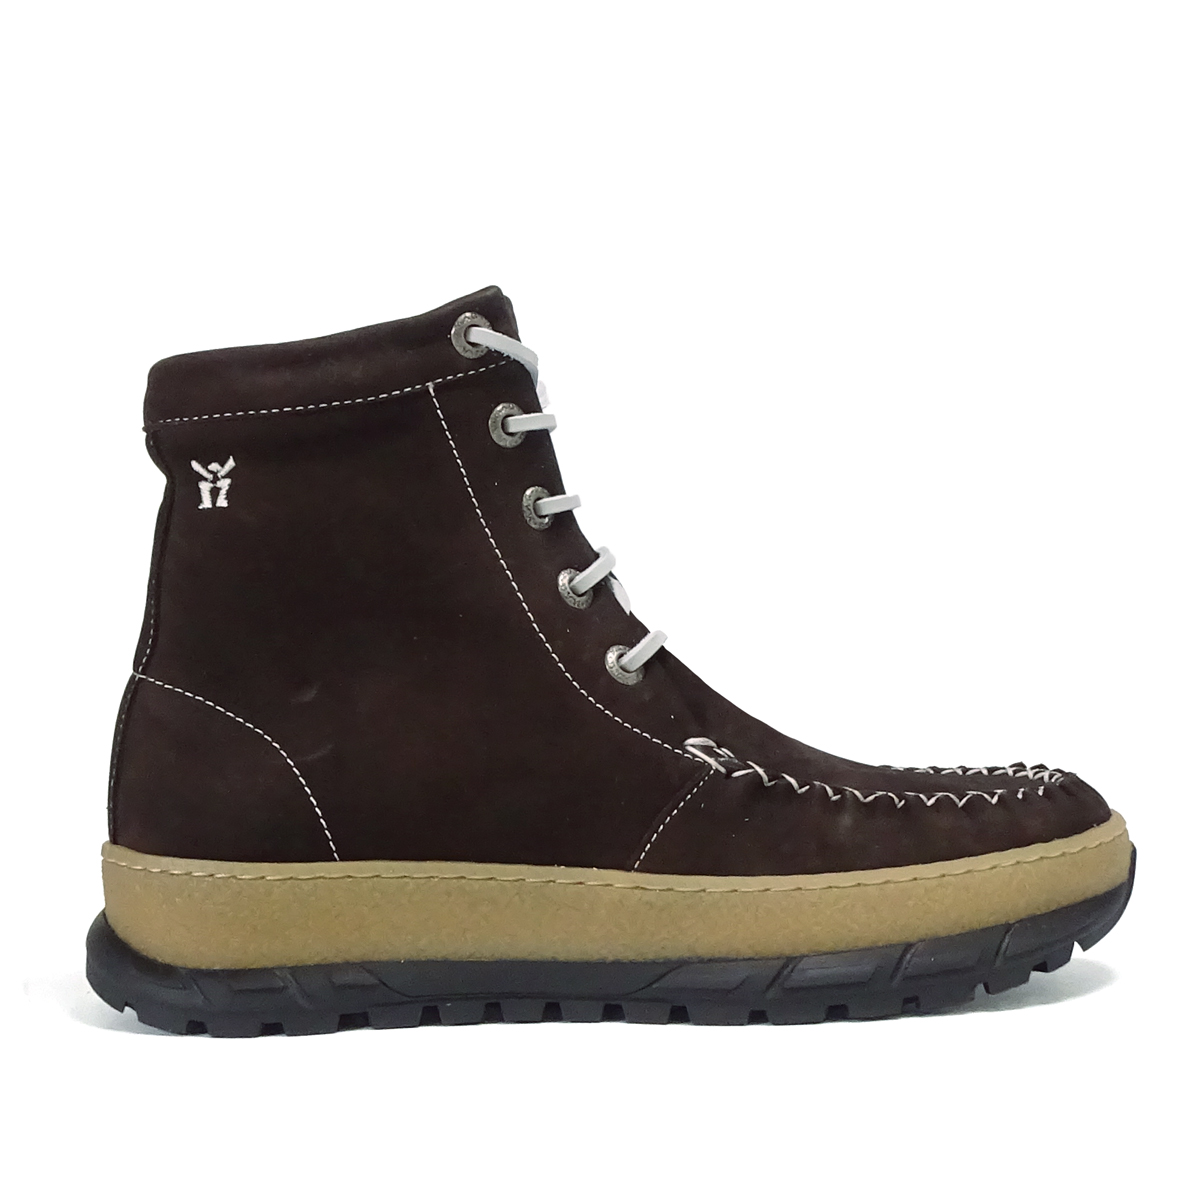 Big Moc 6001 Dark Brown